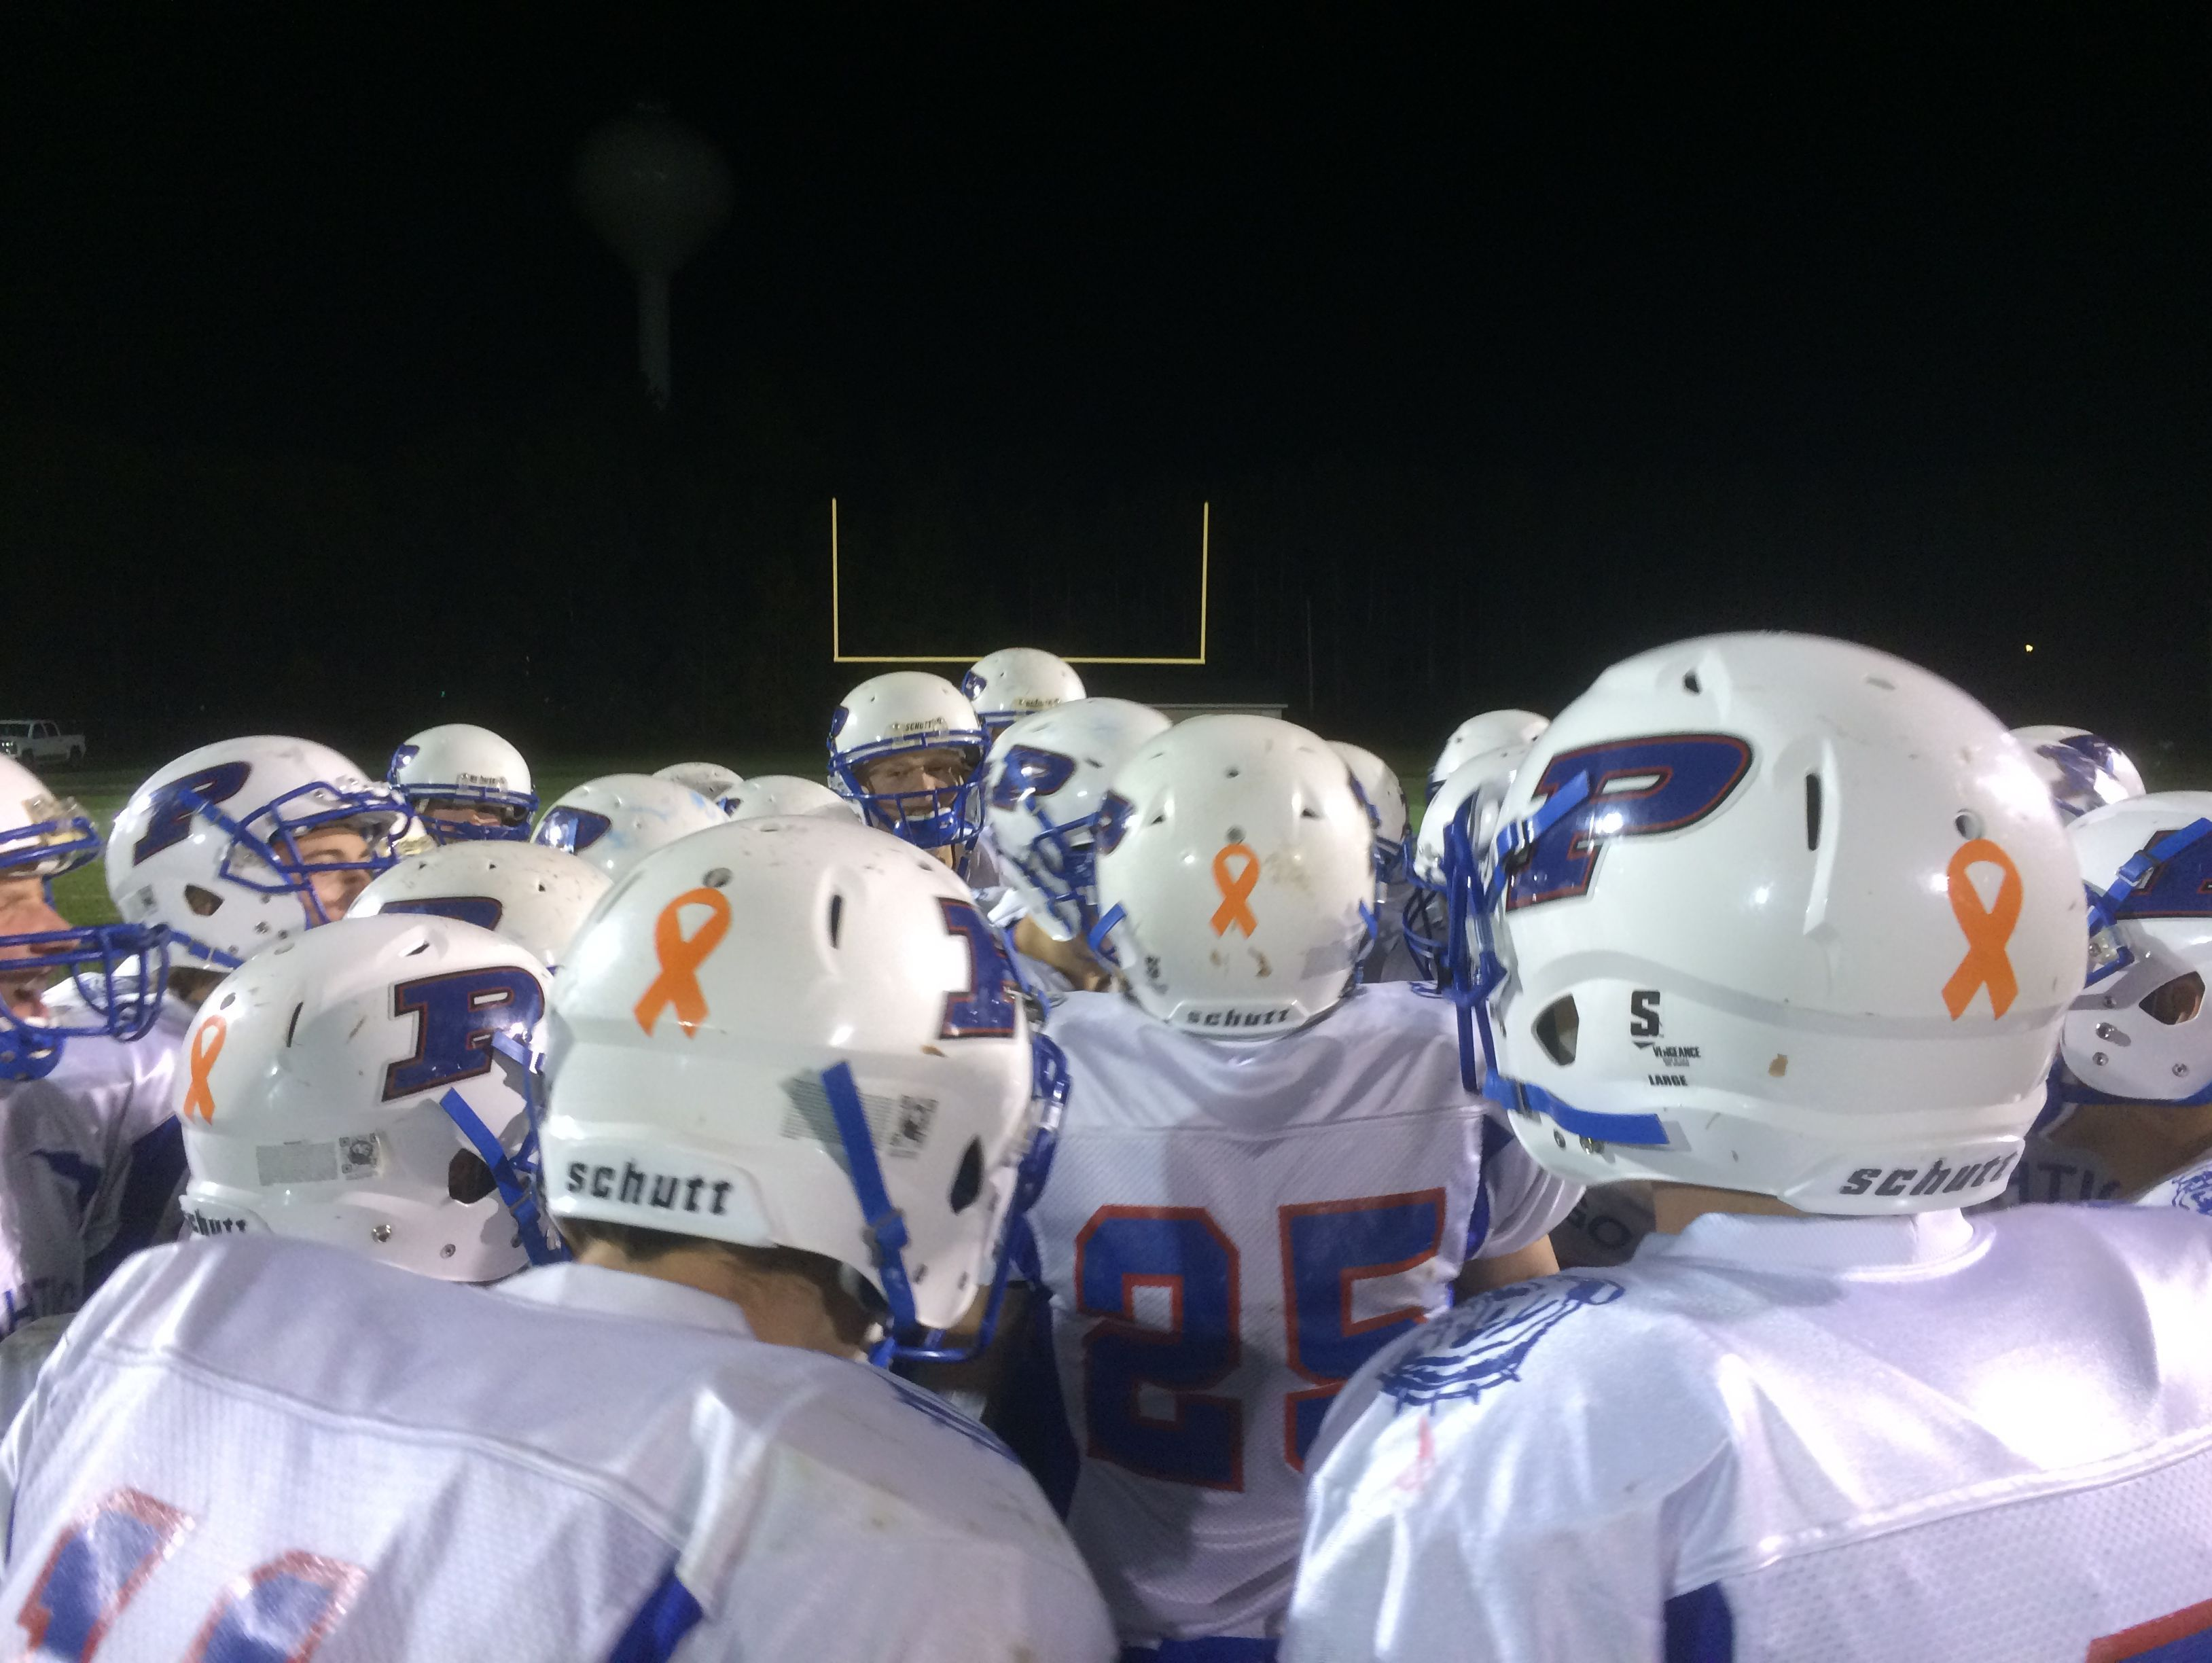 The Peshtigo football team placed orange decals on the back of their helmets to show support for Meghan Harper, an eighth-grader in the school district, who was diagnosed with leukemia.